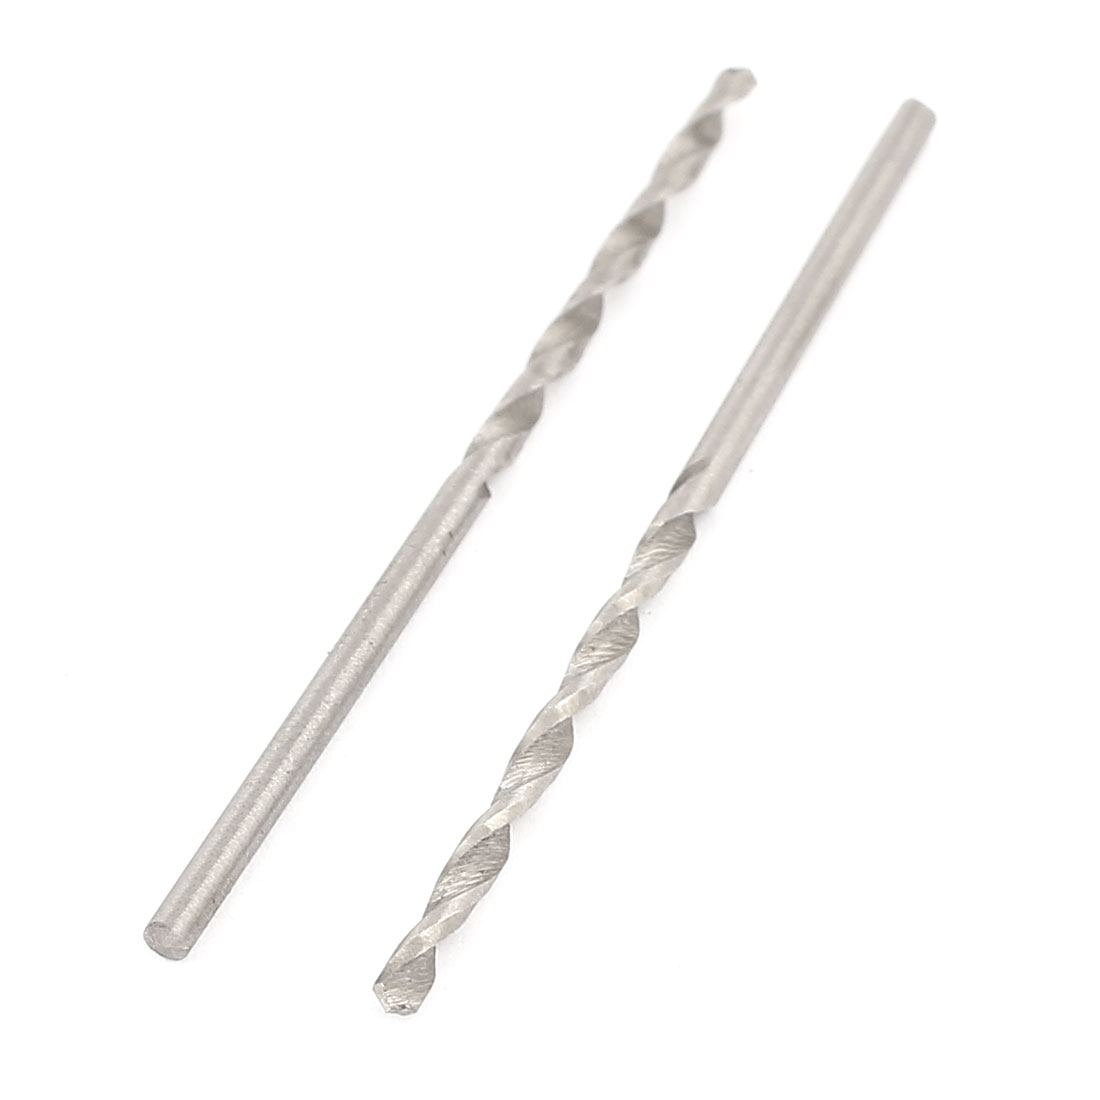 1.5mm Shank 1.5mm Cutting Dia HSS Electric Drill Twist Drilling Bit 2pcs